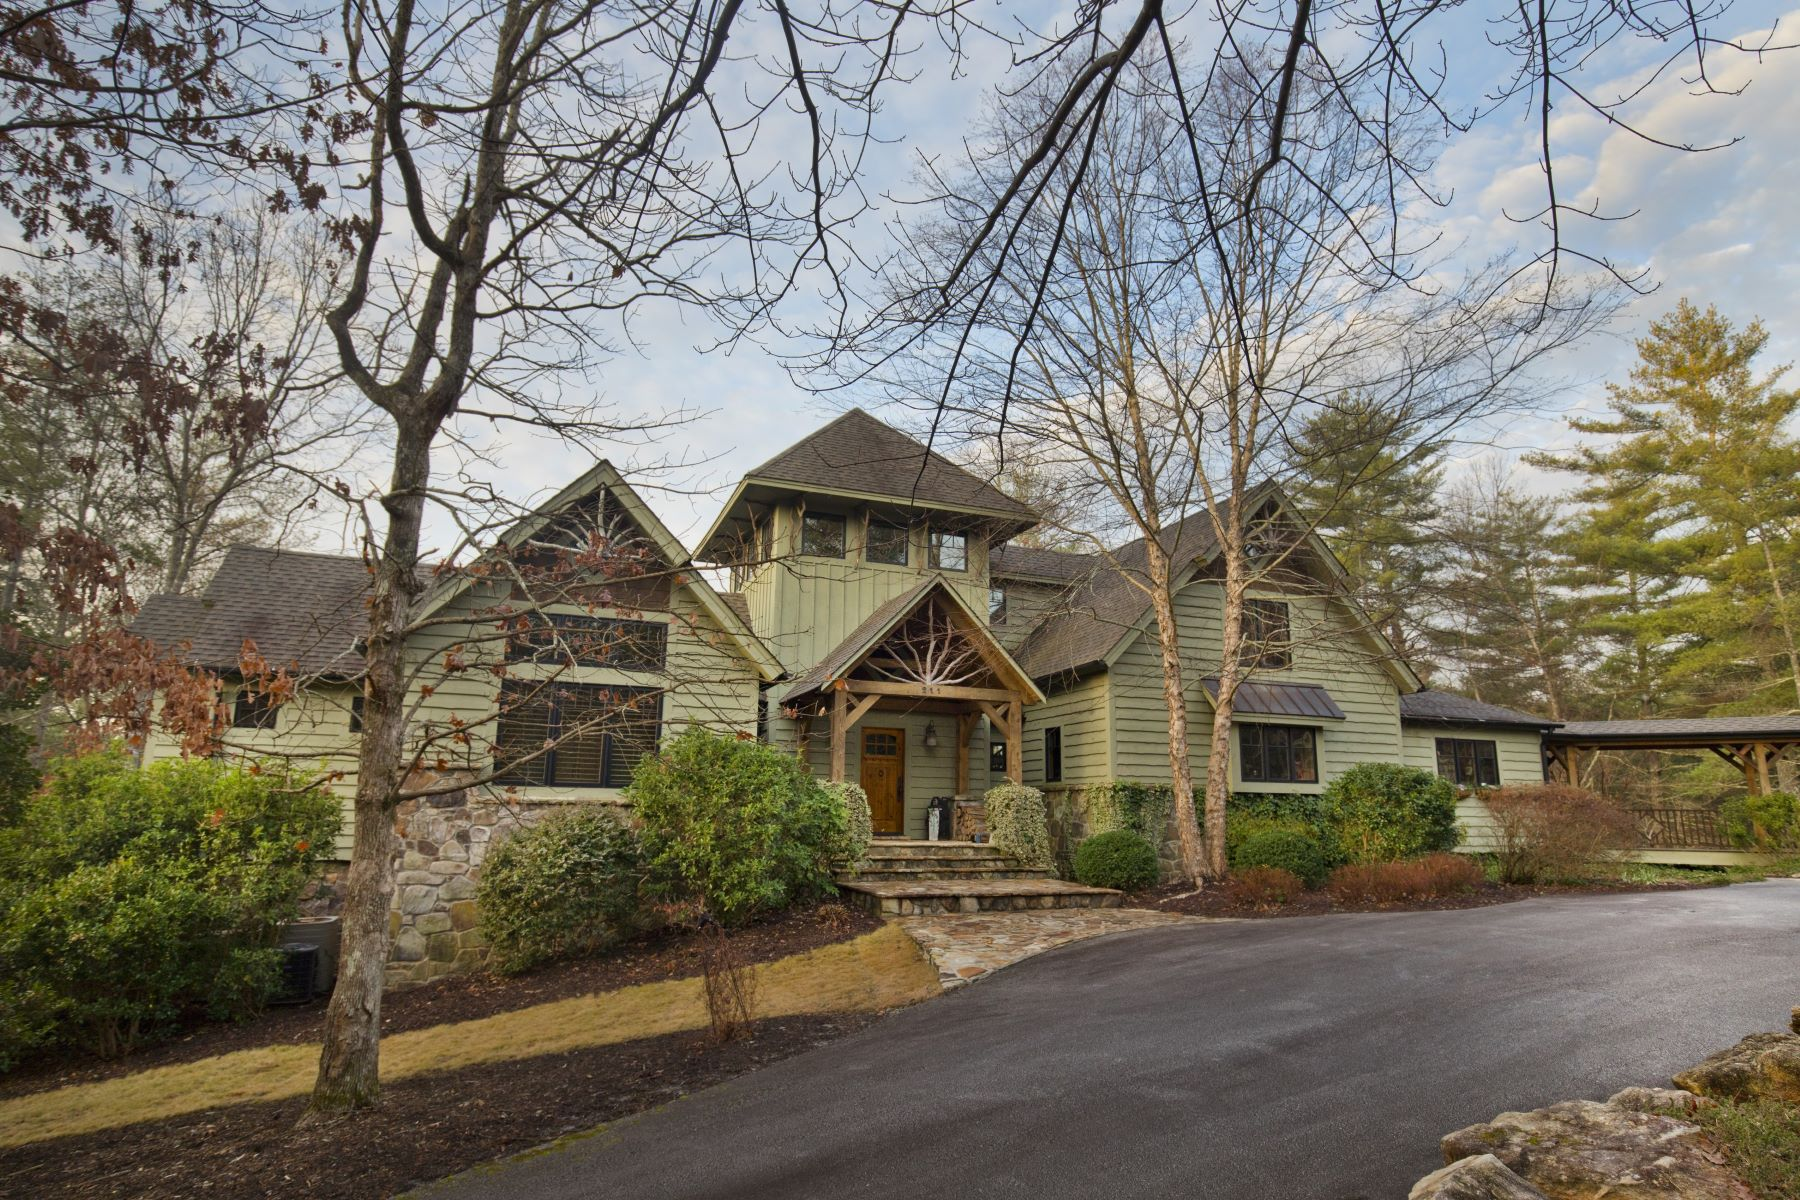 Single Family Home for Sale at Spacious & Enchanting Mill Creek Post & Beam Mountain-Lake Home 211 Vineyard Park The Cliffs At Keowee Vineyards, Sunset, South Carolina, 29685 United States